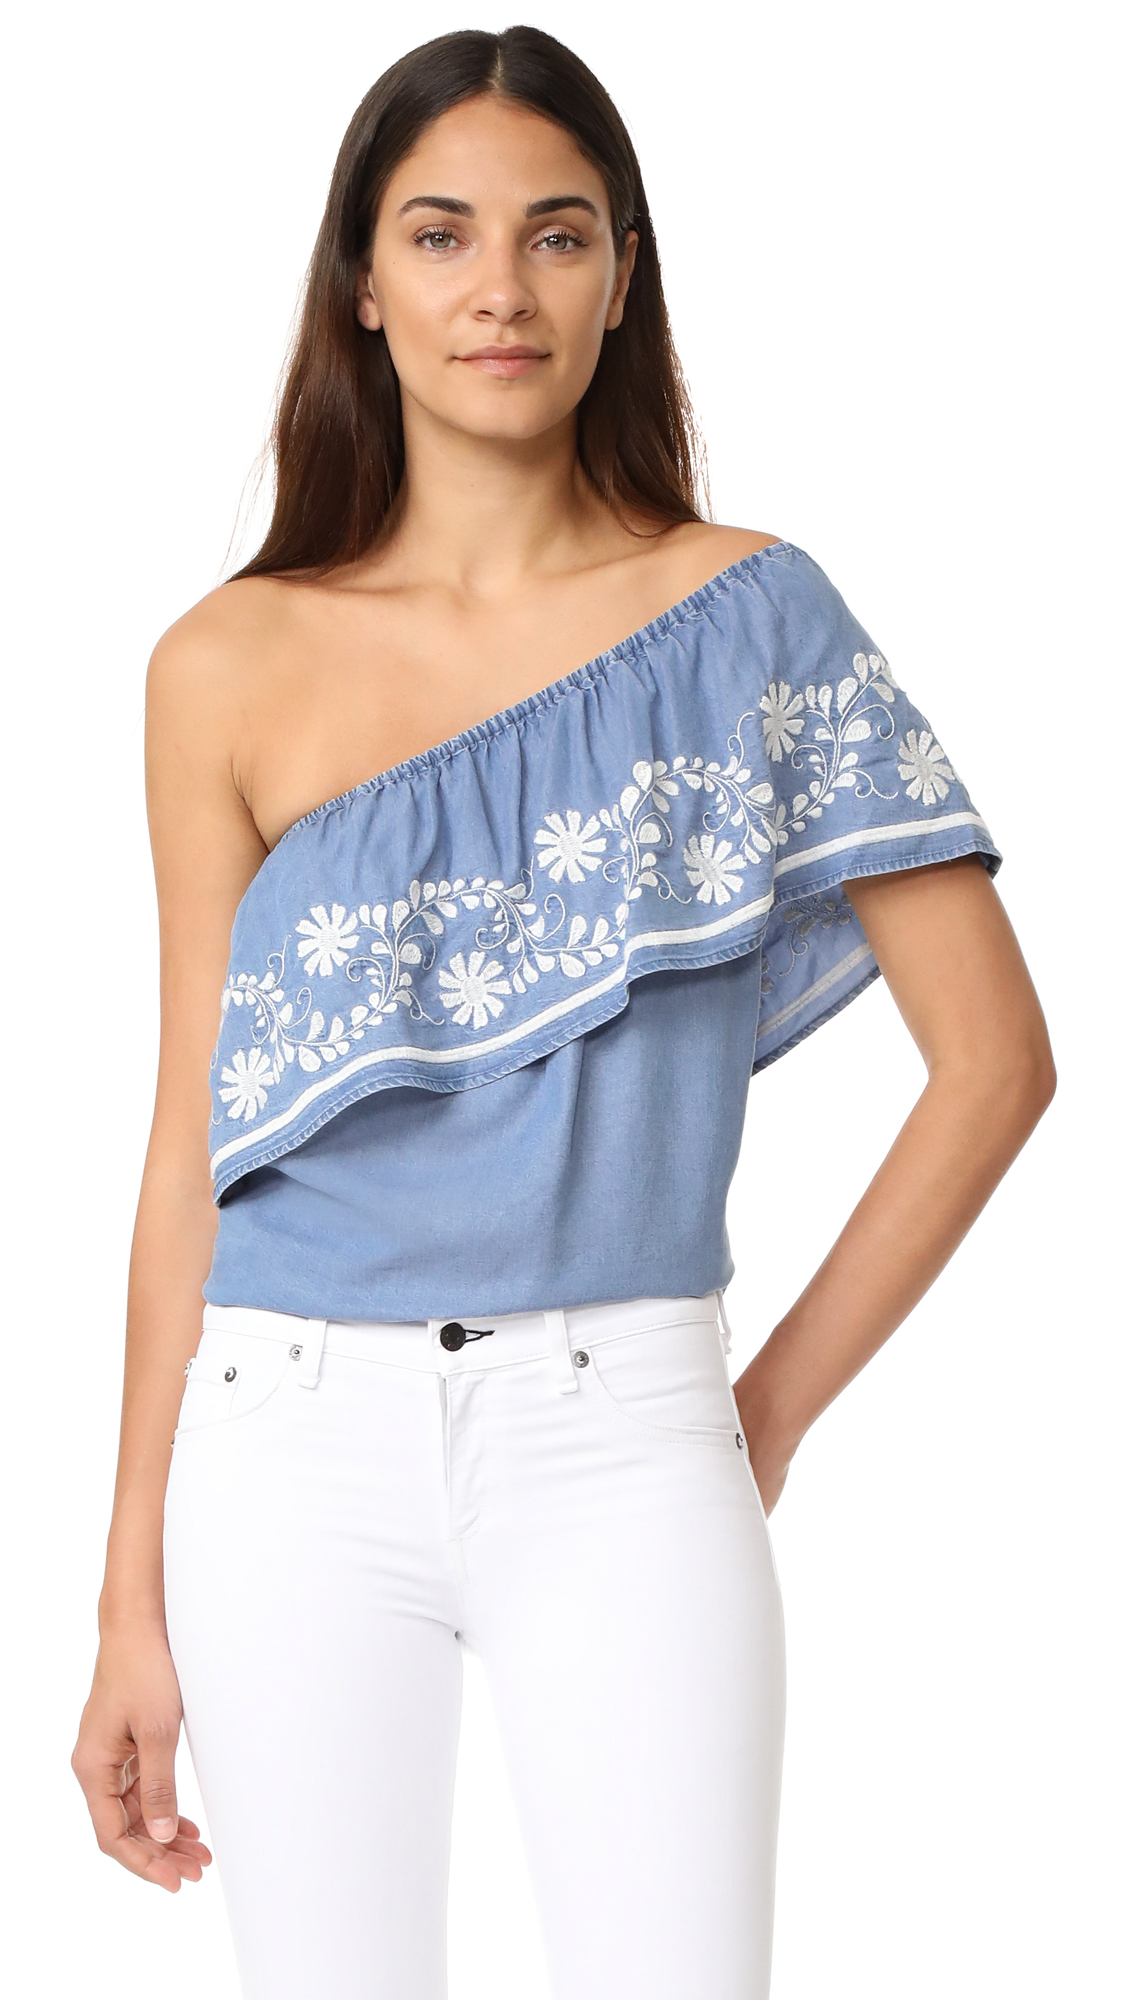 Rebecca Minkoff Rita Top - Light Blue